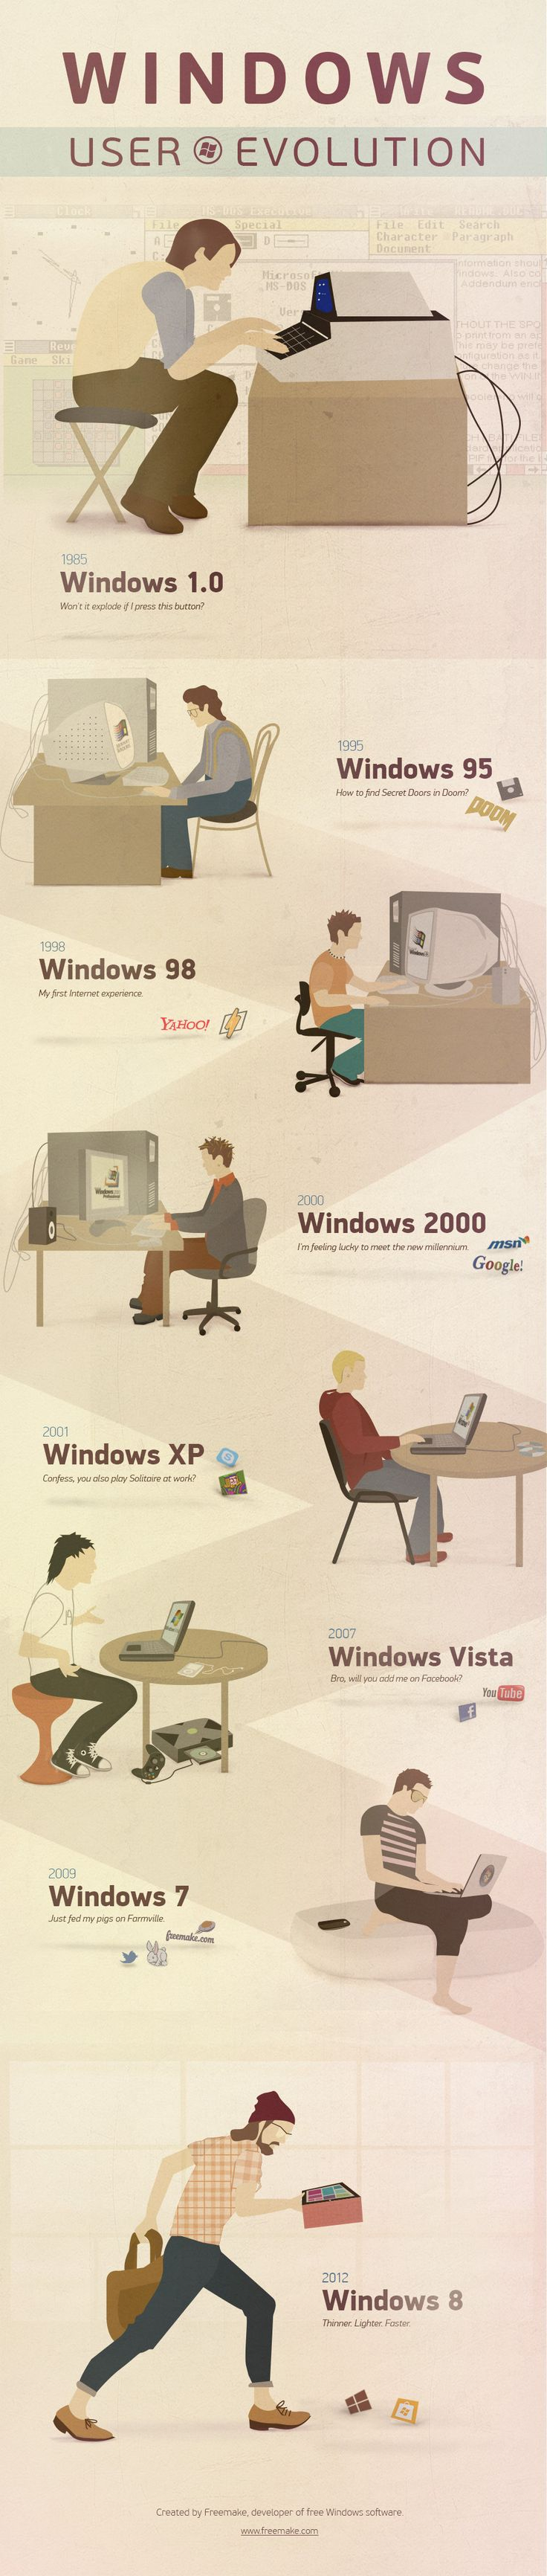 The evolution of Microsoft